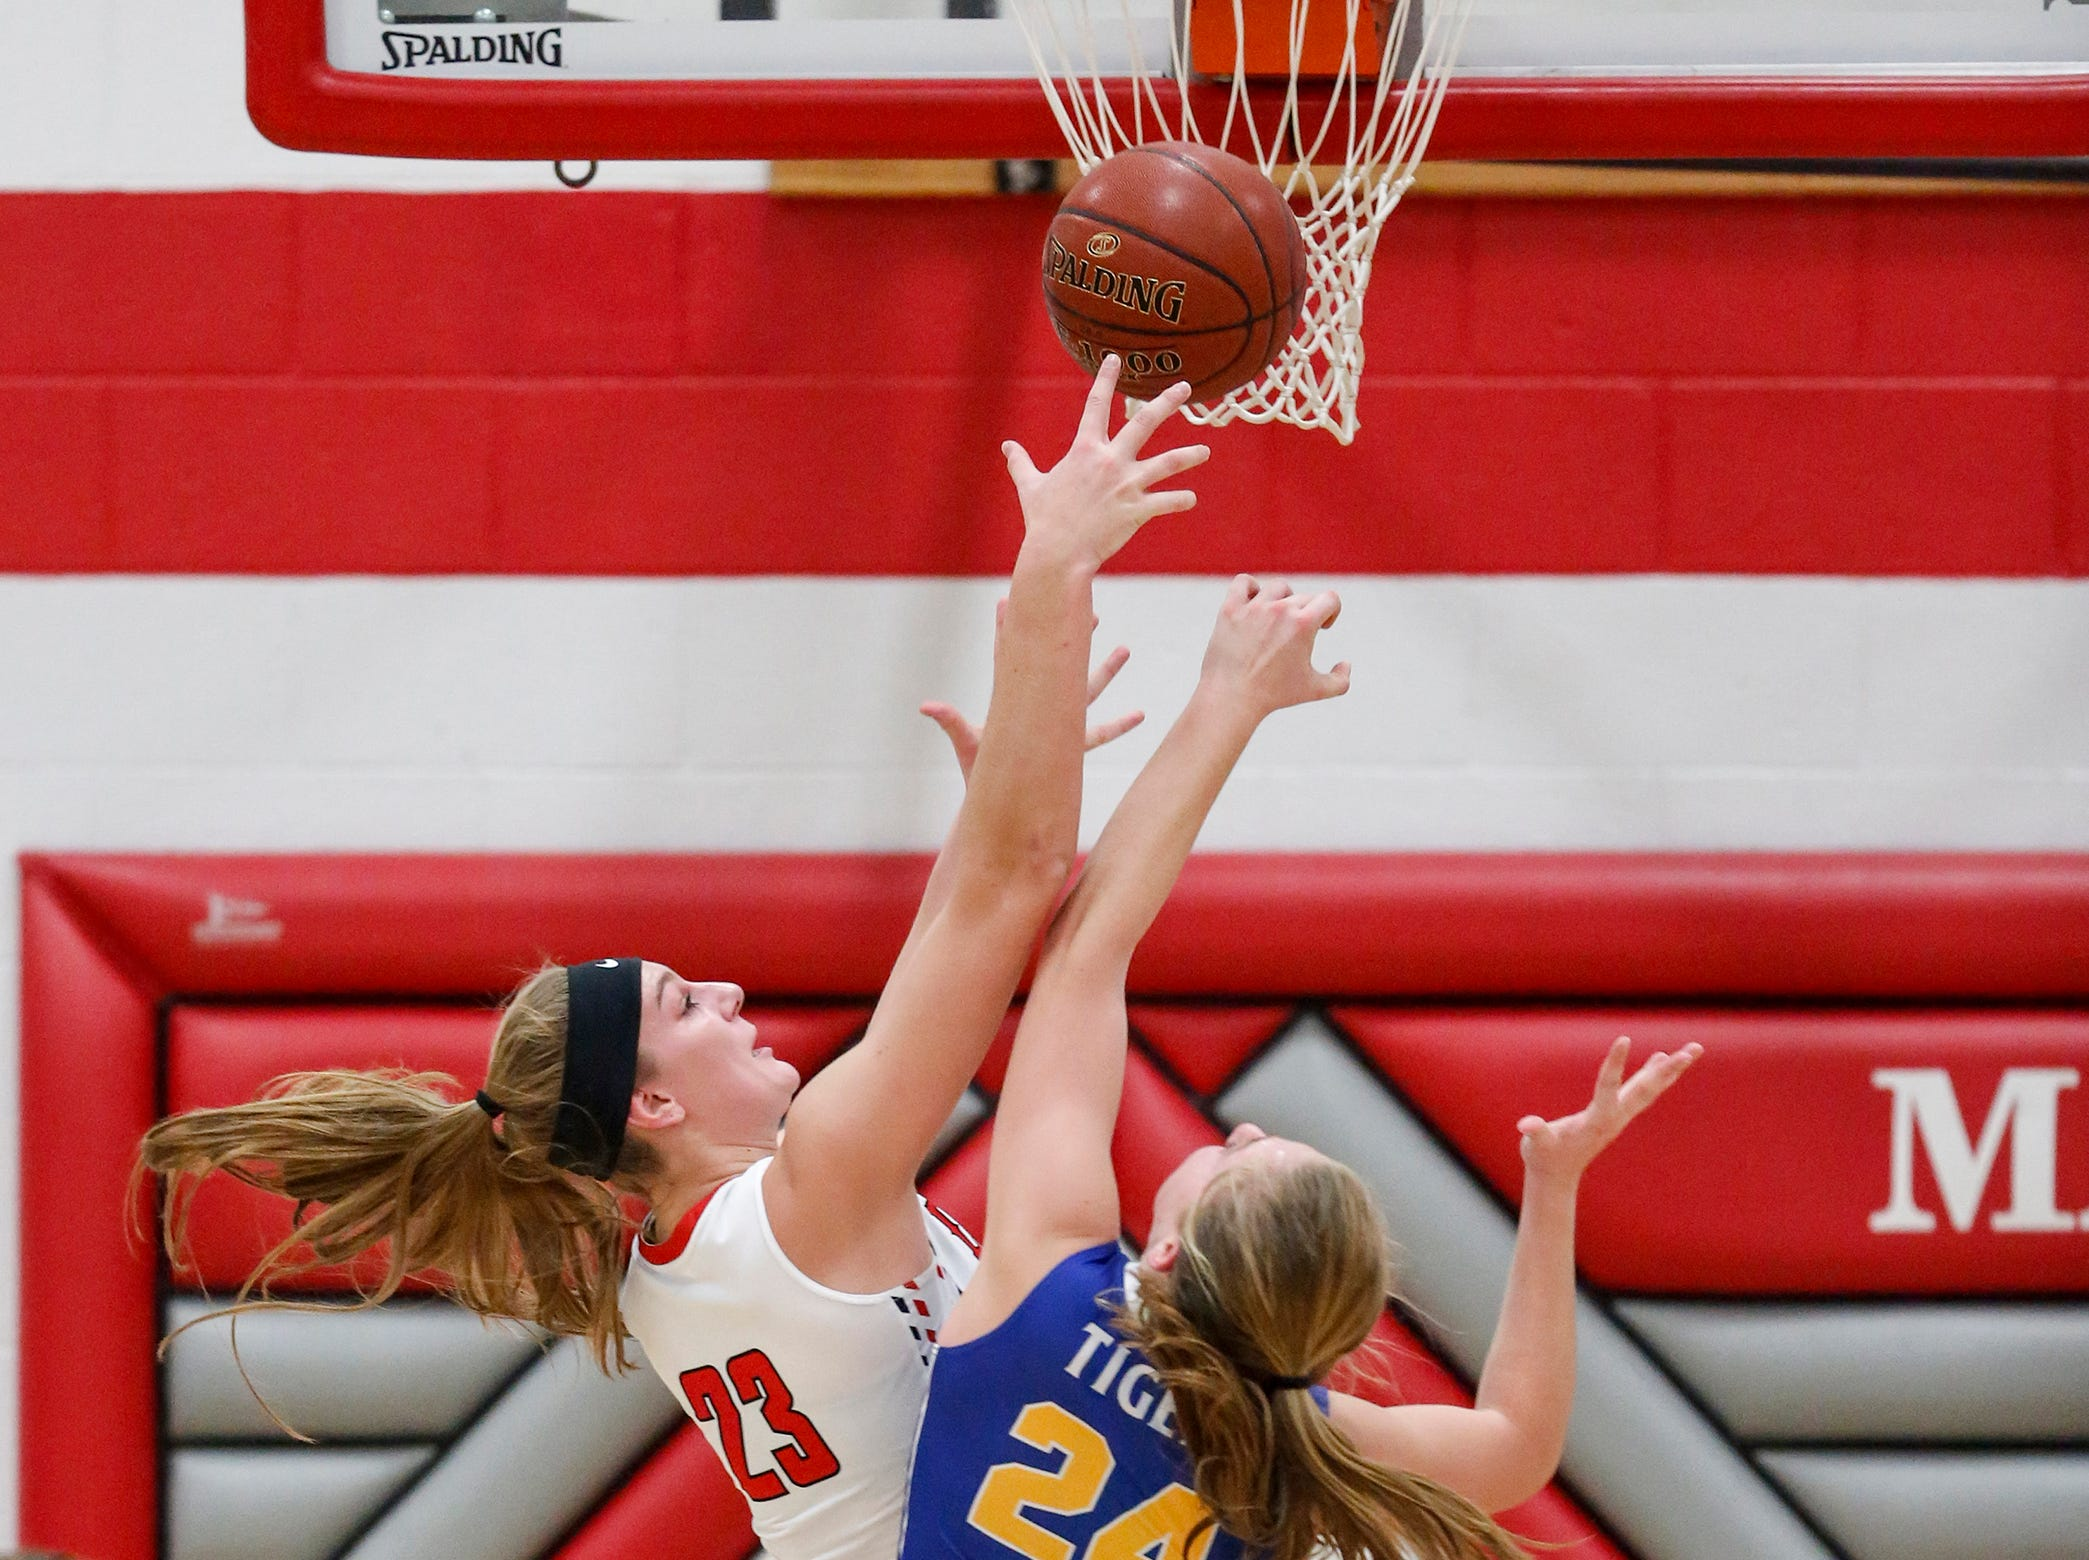 Manitowoc Lutheran's Emily Behnke beats Howards Grove's Kayla Bender for a rebound at Manitowoc Lutheran High School Tuesday, December 18, 2018, in Manitowoc, Wis. Joshua Clark/USA TODAY NETWORK-Wisconsin